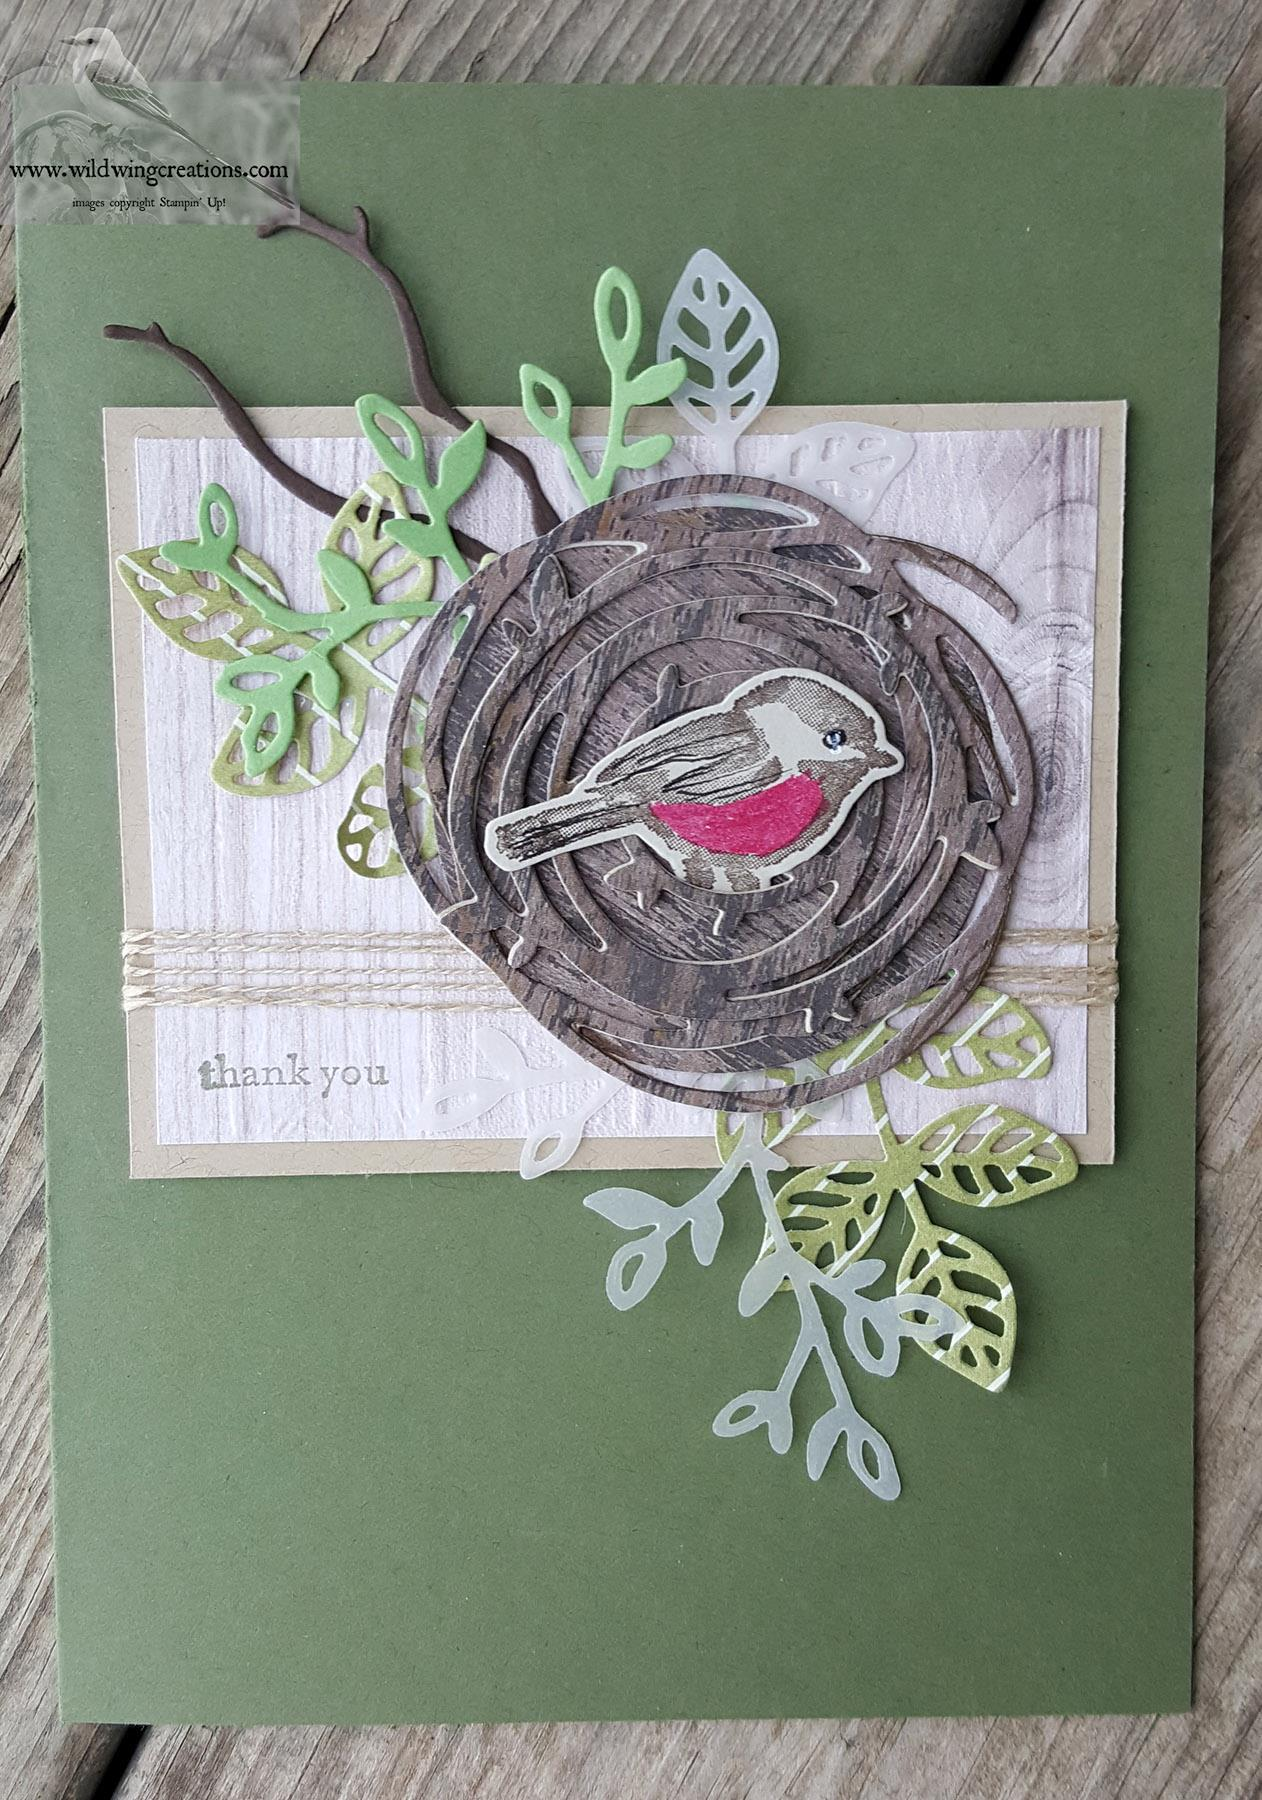 wild wing creations-5